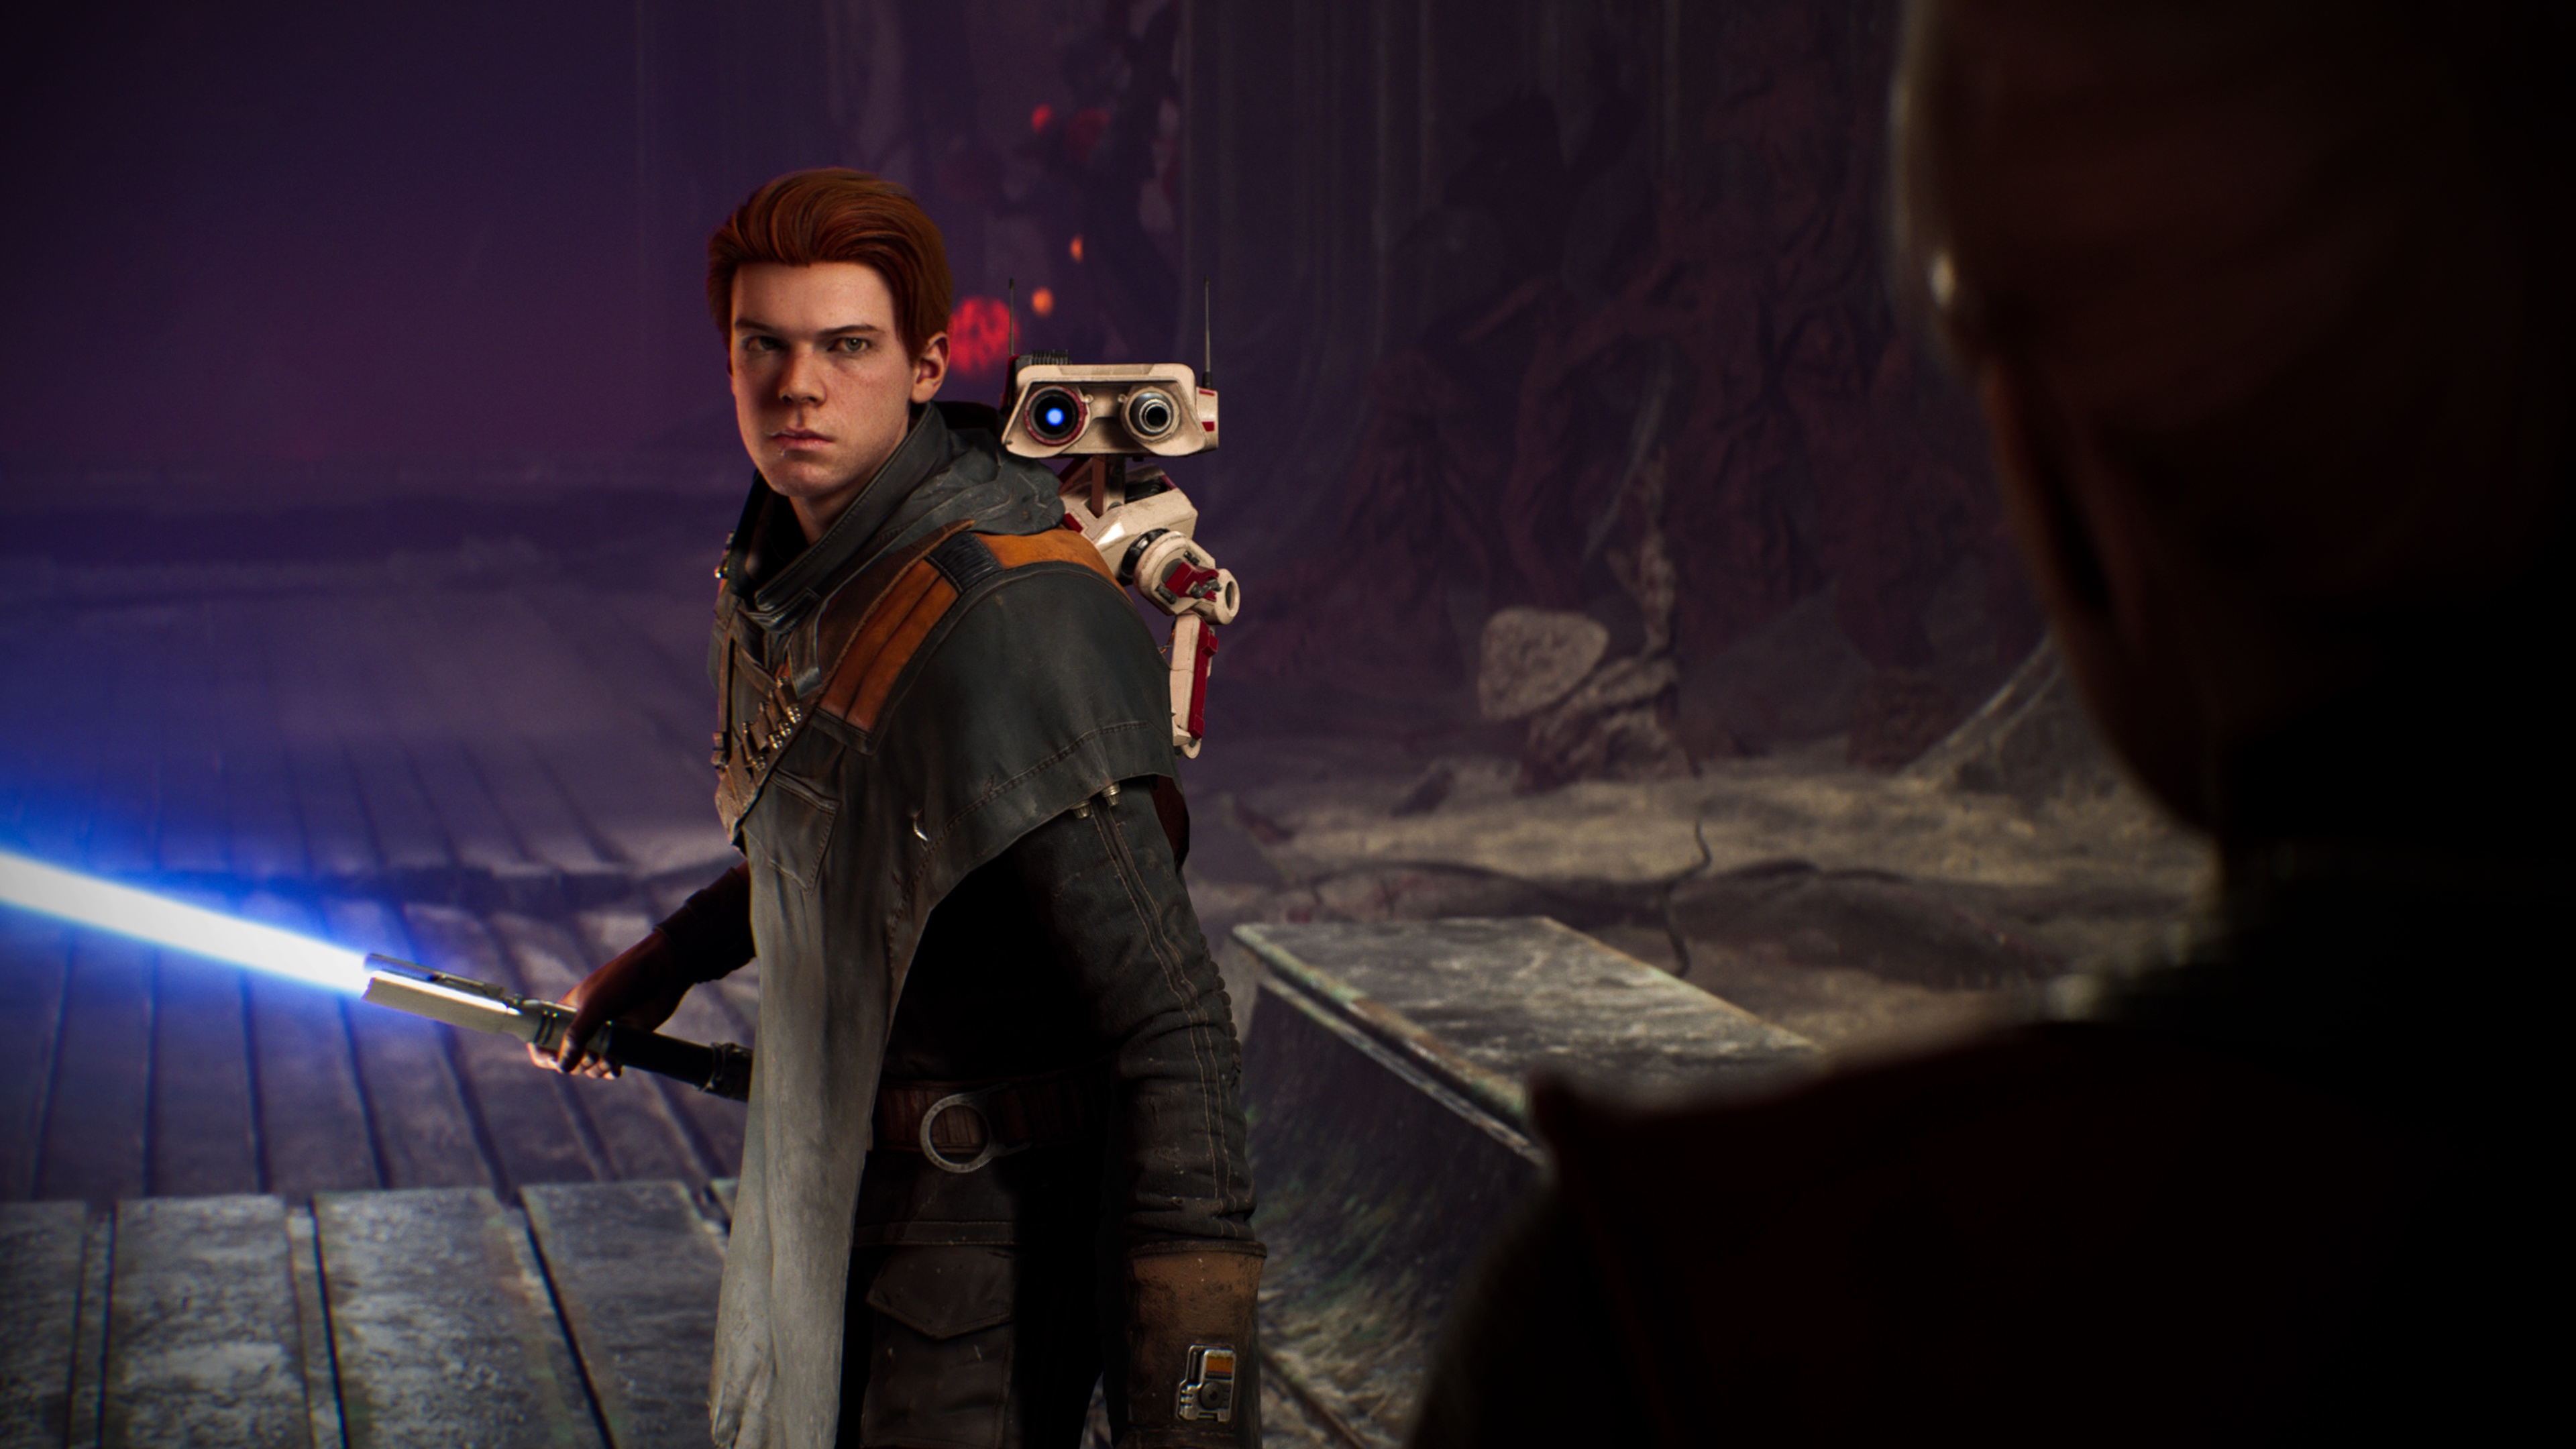 a young brown-haired man, Cal Kestis, holds a blue lightsaber in a screenshot from Star Wars Jedi: Fallen Order